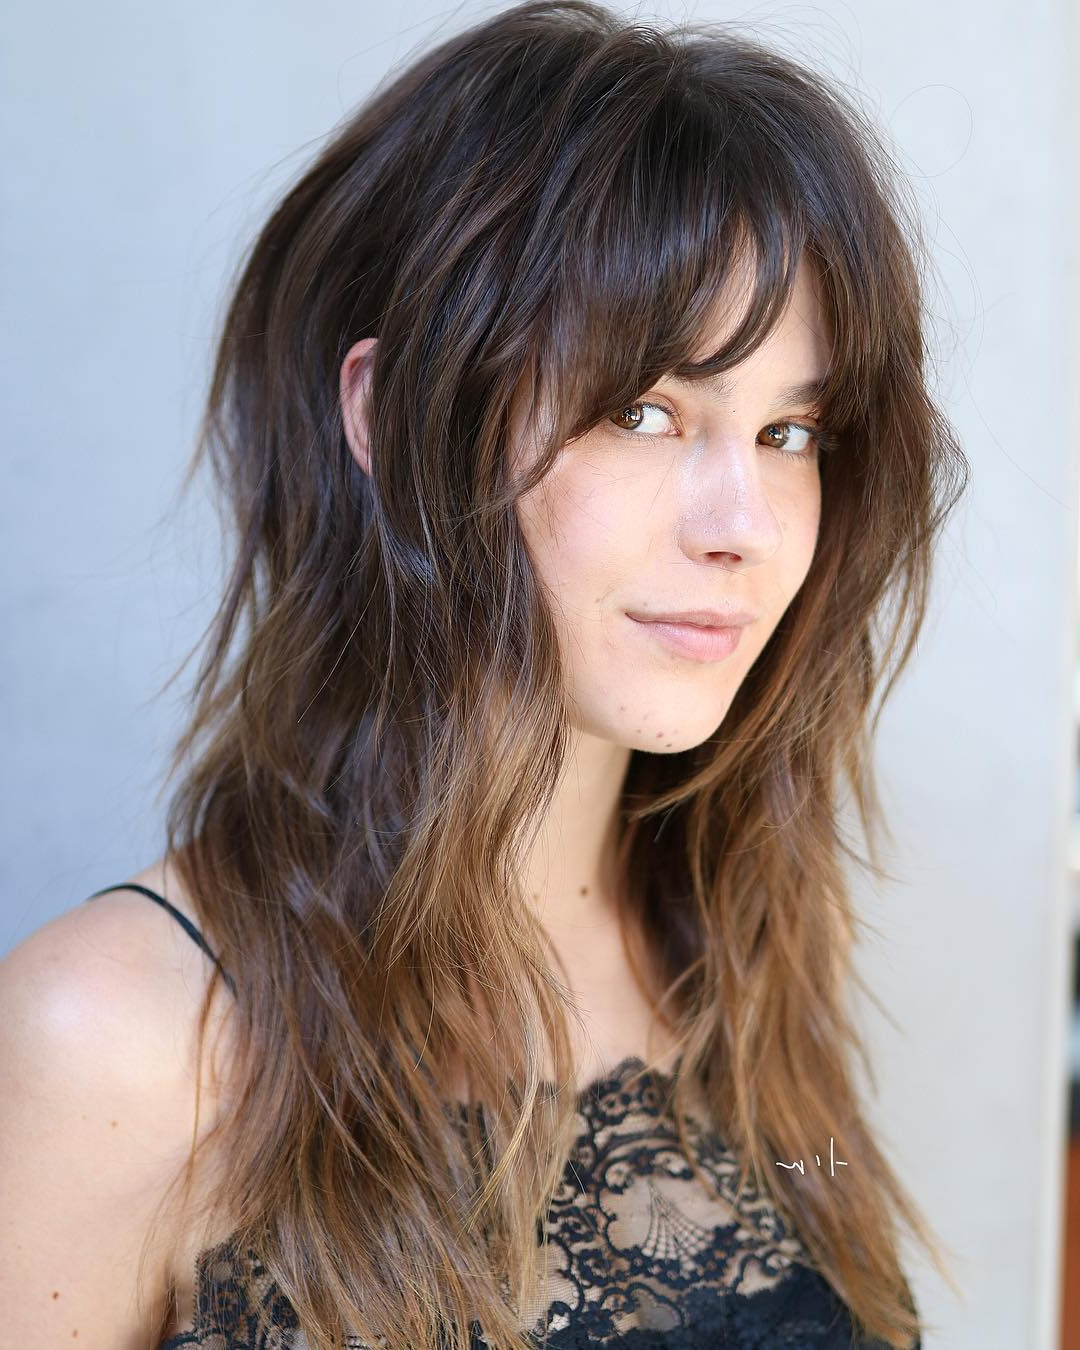 40 Modern Shag Haircuts For Women To Make A Splash With Layered Waves Shag Haircuts (View 11 of 20)